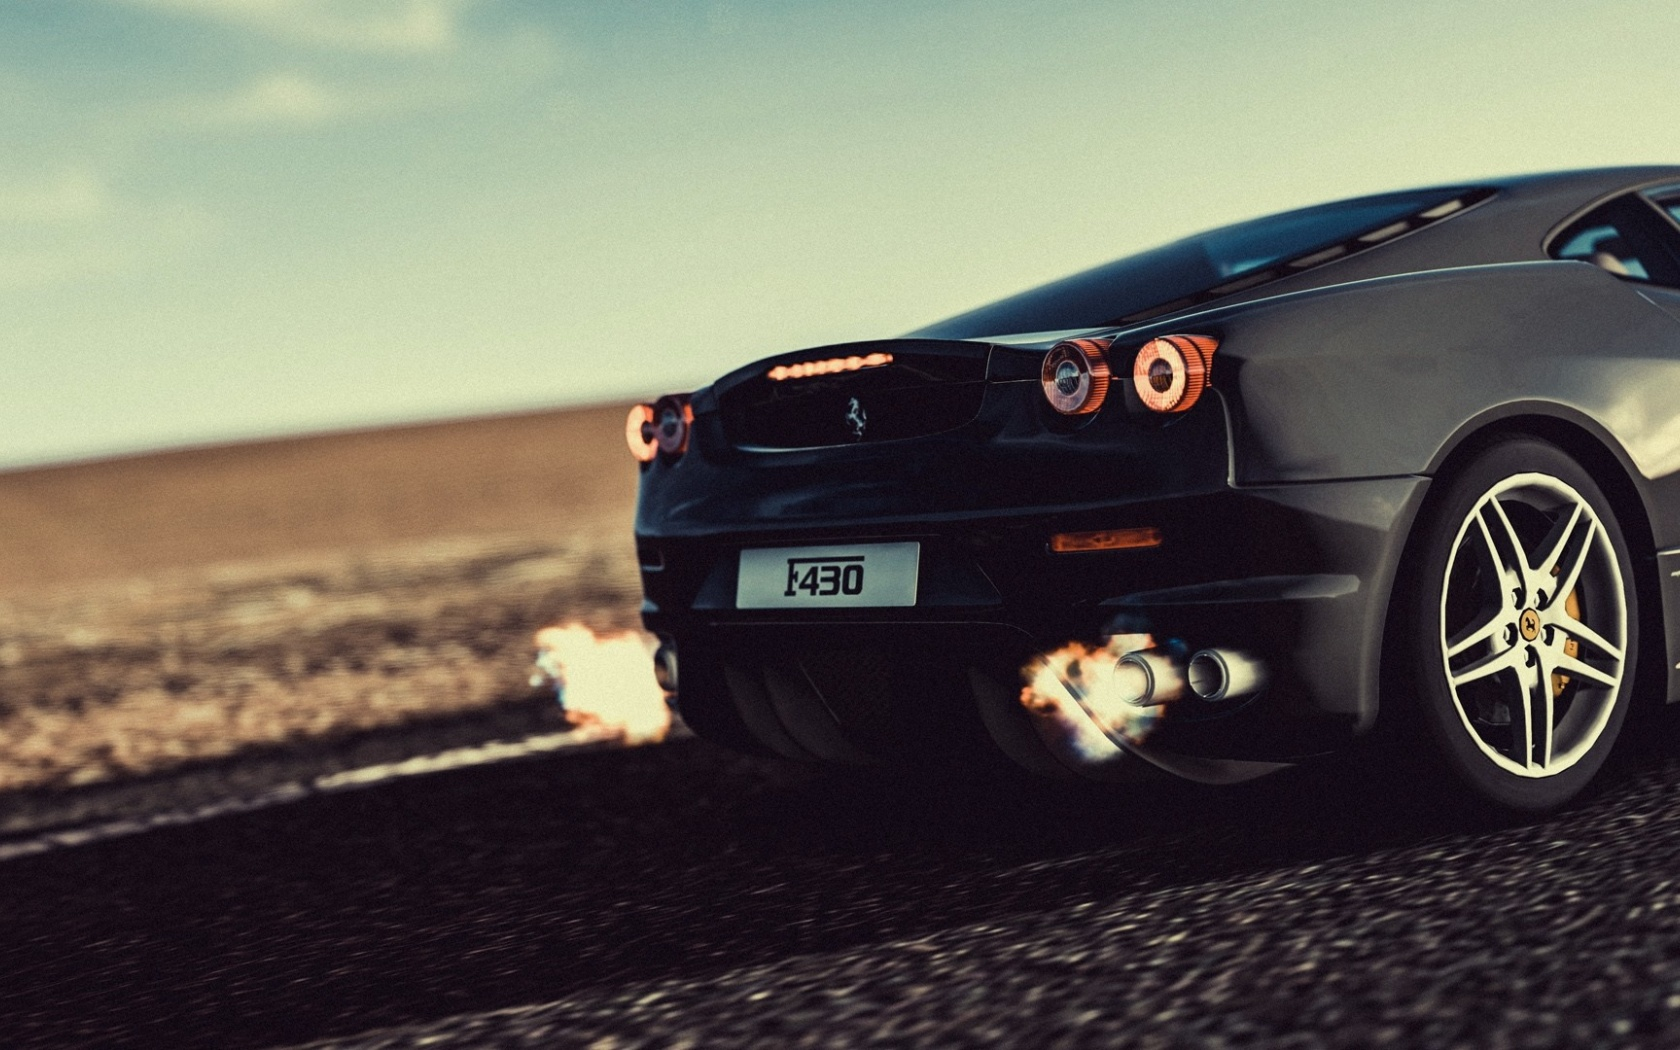 1680x1050 Ferrari F430 Nos Desktop Pc And Mac Wallpaper